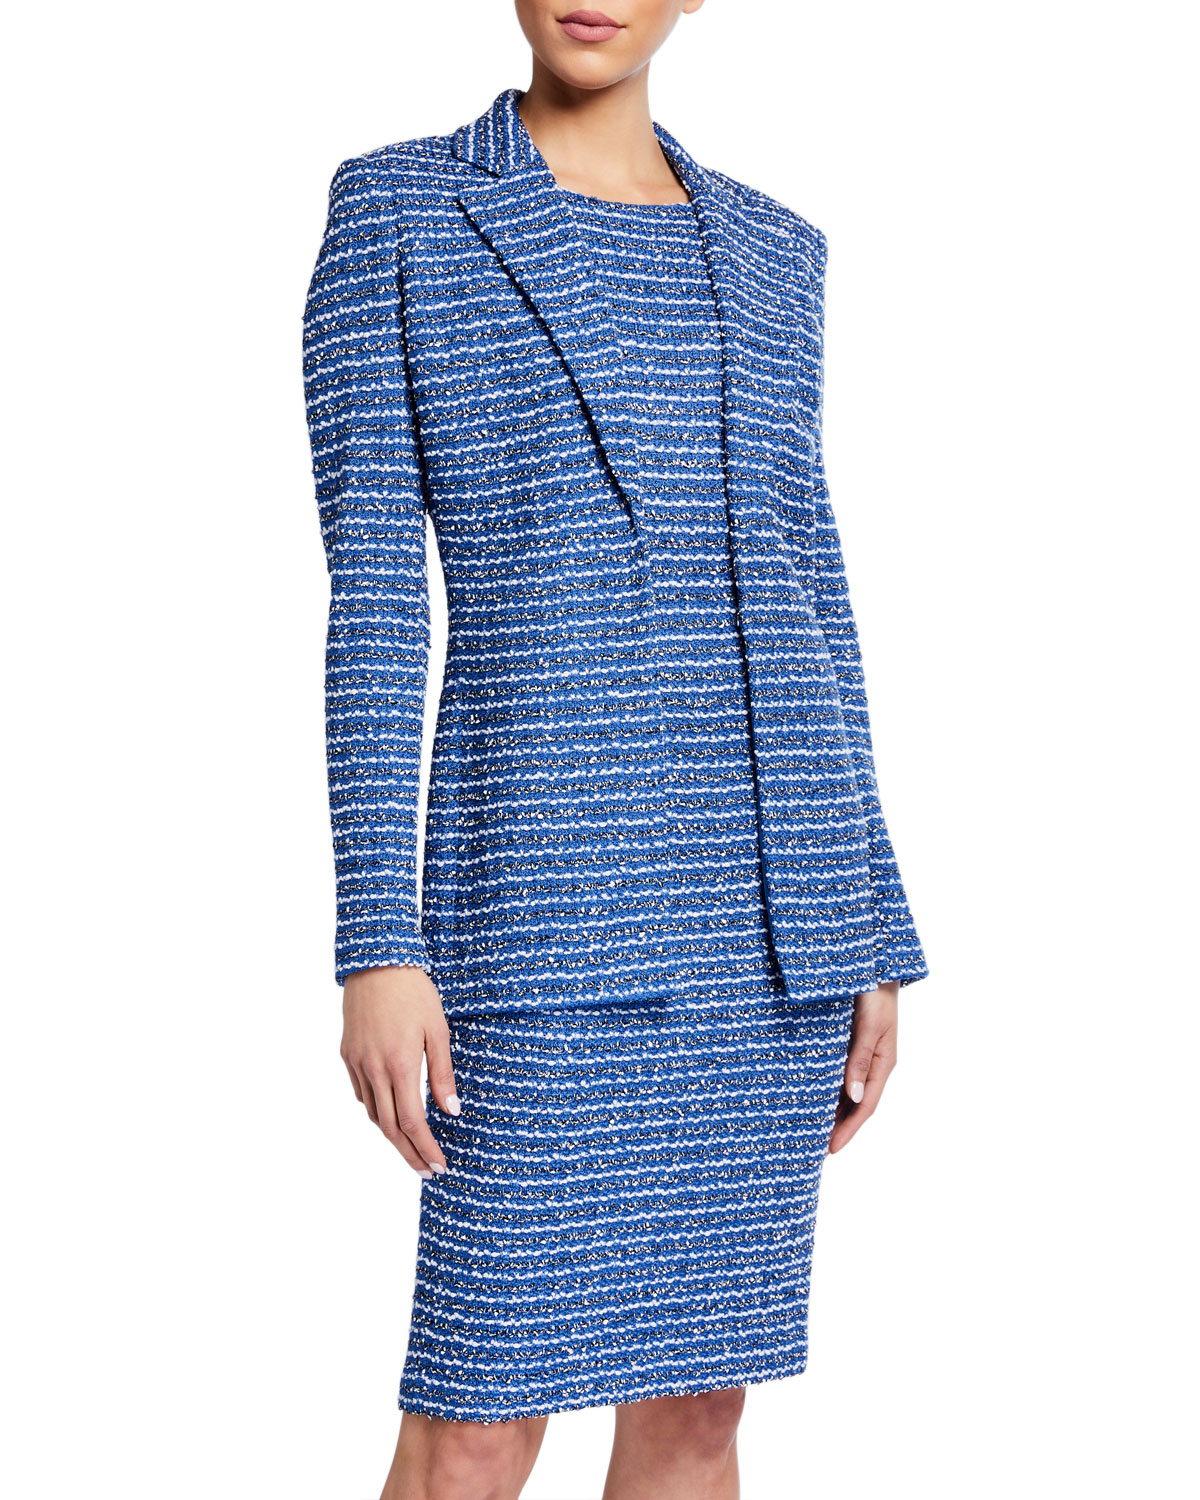 St. John Collection Butterfly Ribbon Tweed Knit Jacket and Matching Items & Matching Items